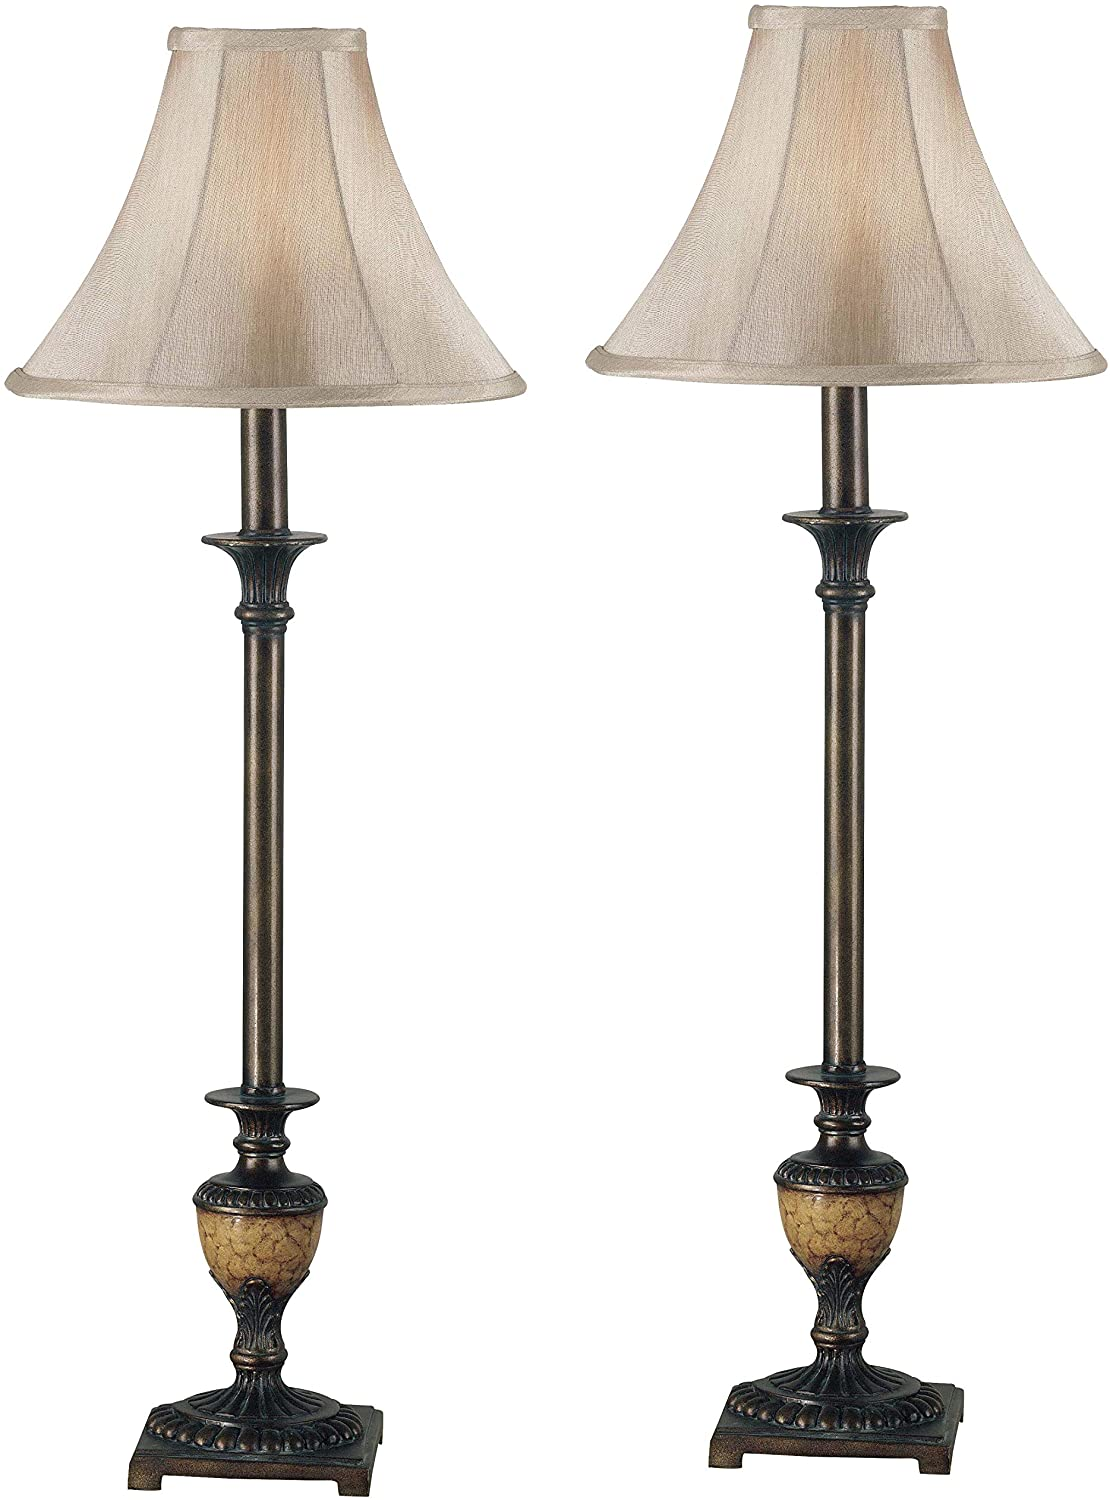 Kenroy Home Classic Buffet Lamp 2-Pack ,30 Inch Height, 11 Inch Diameter with Crackle Bronze Finish